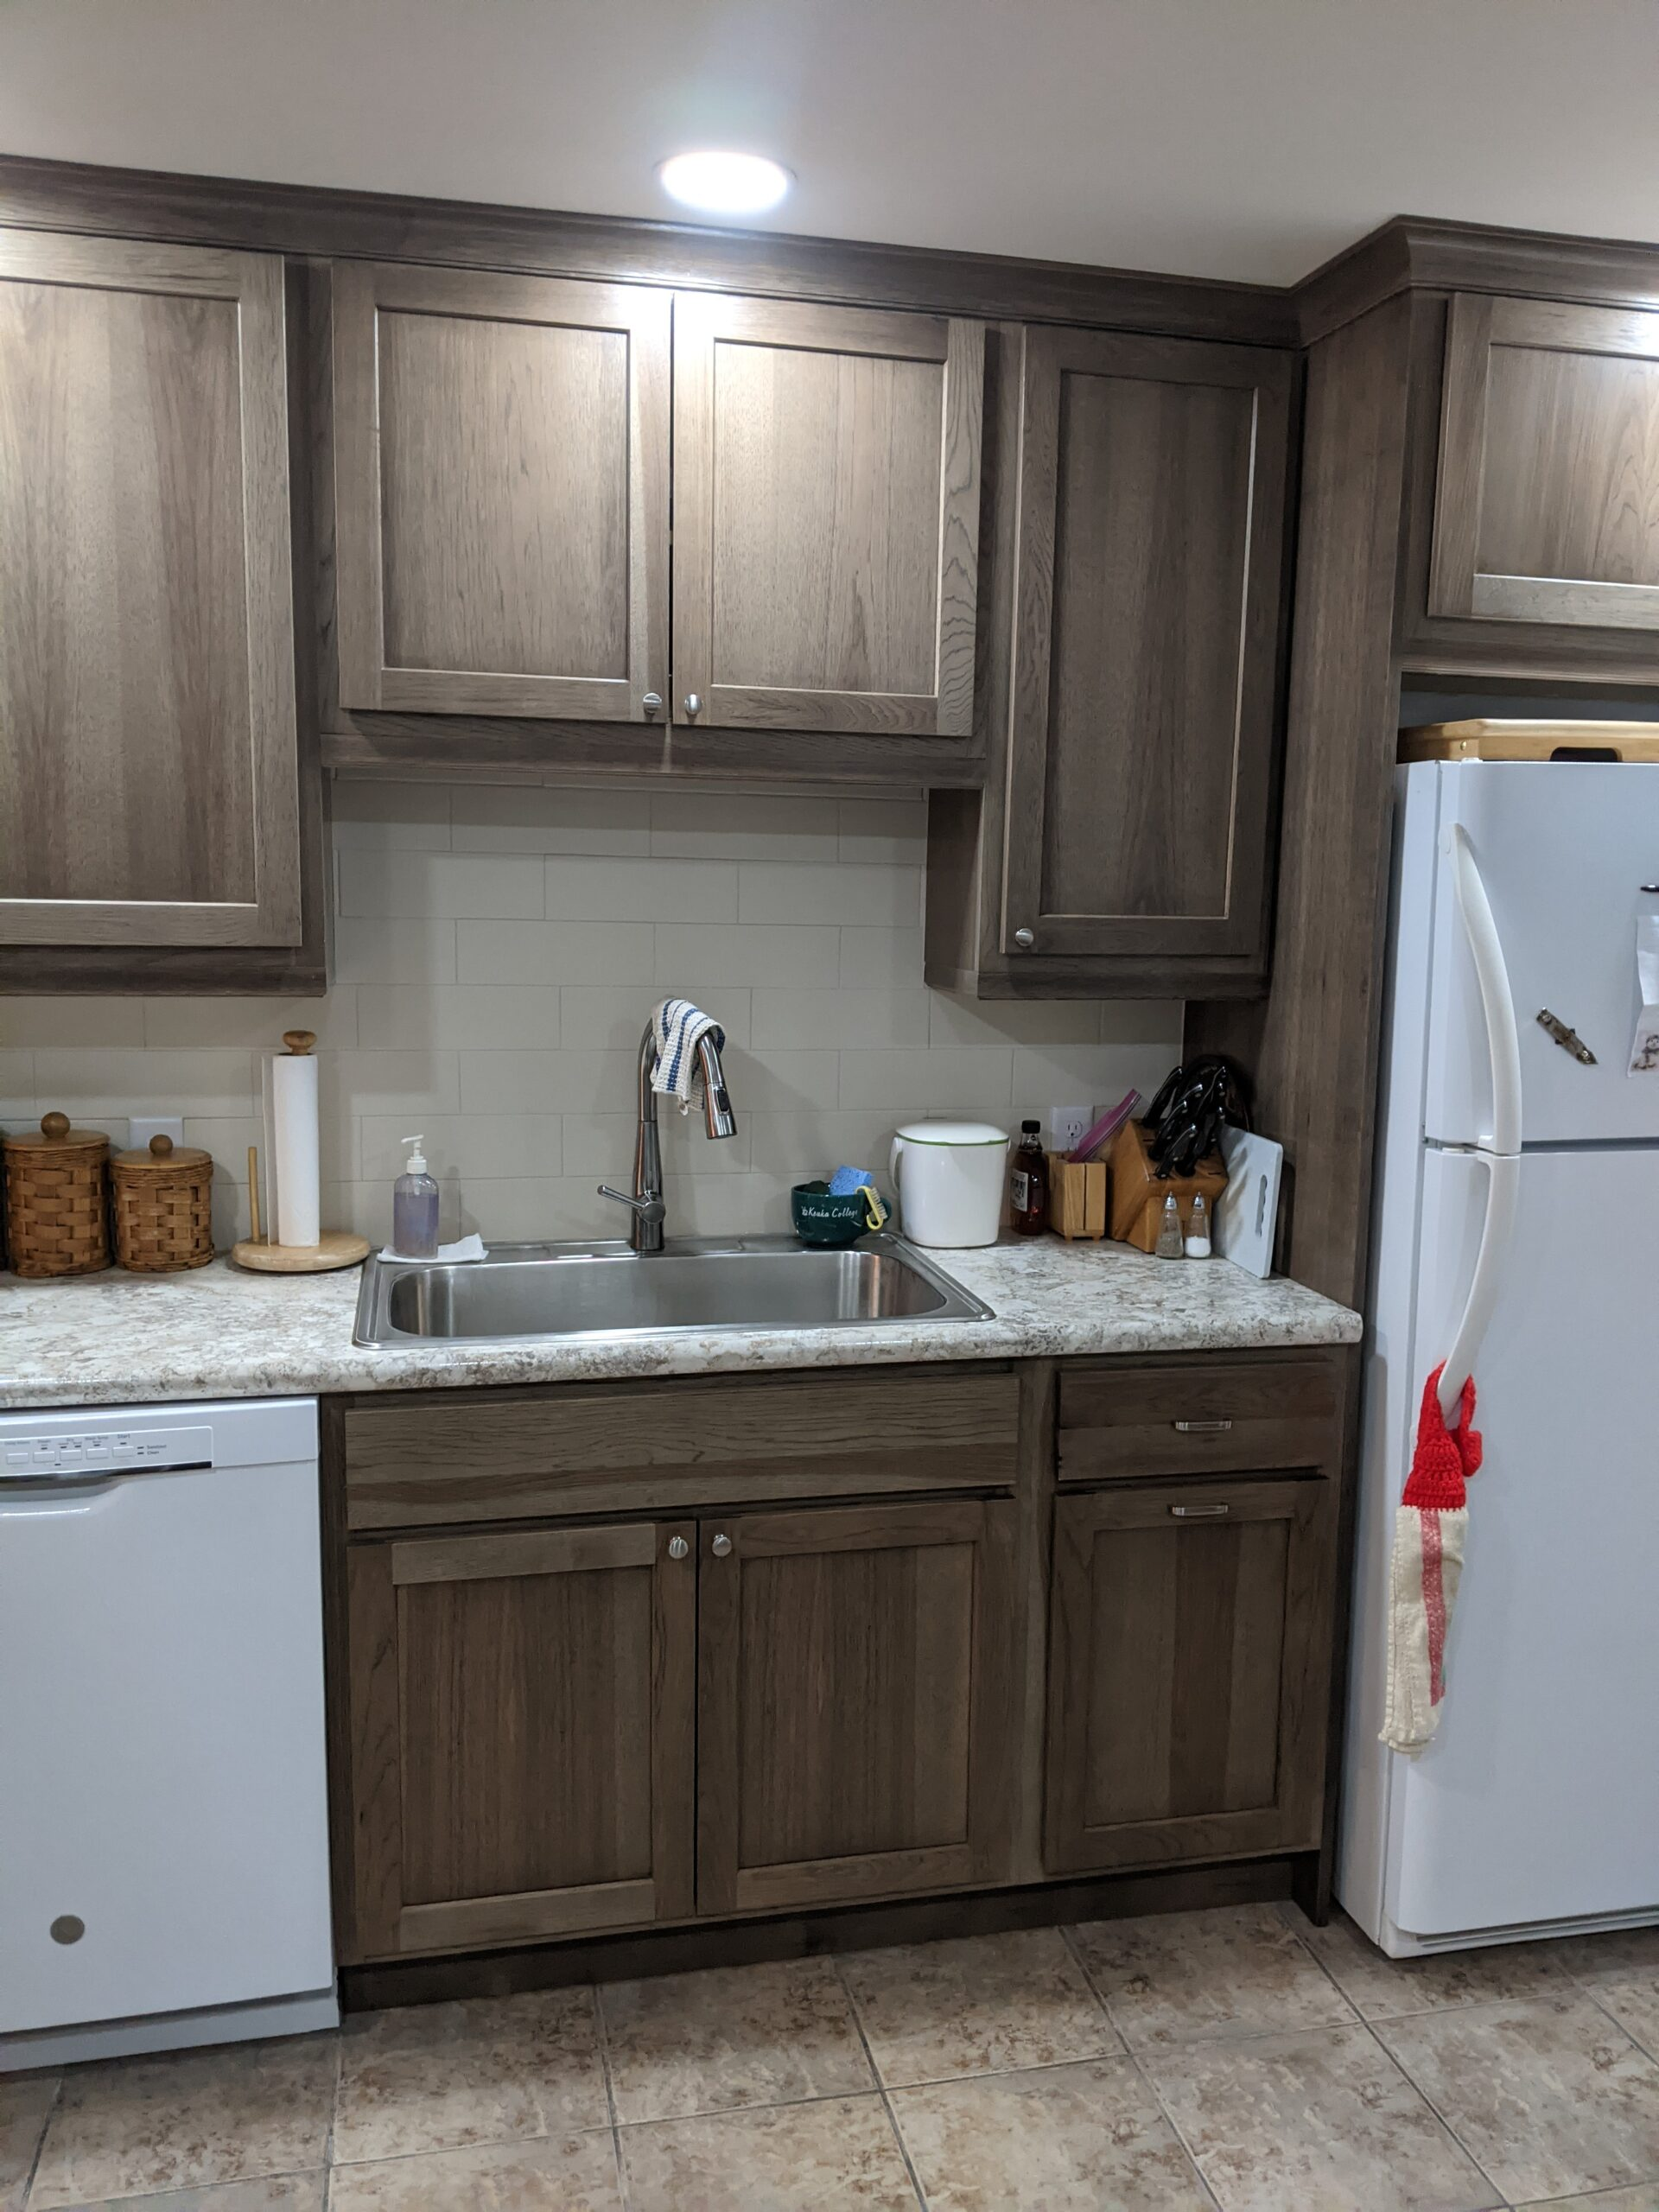 Sink area after renovations, with recessed lighting, soffits removed and Hickory cabinets in Morel finish